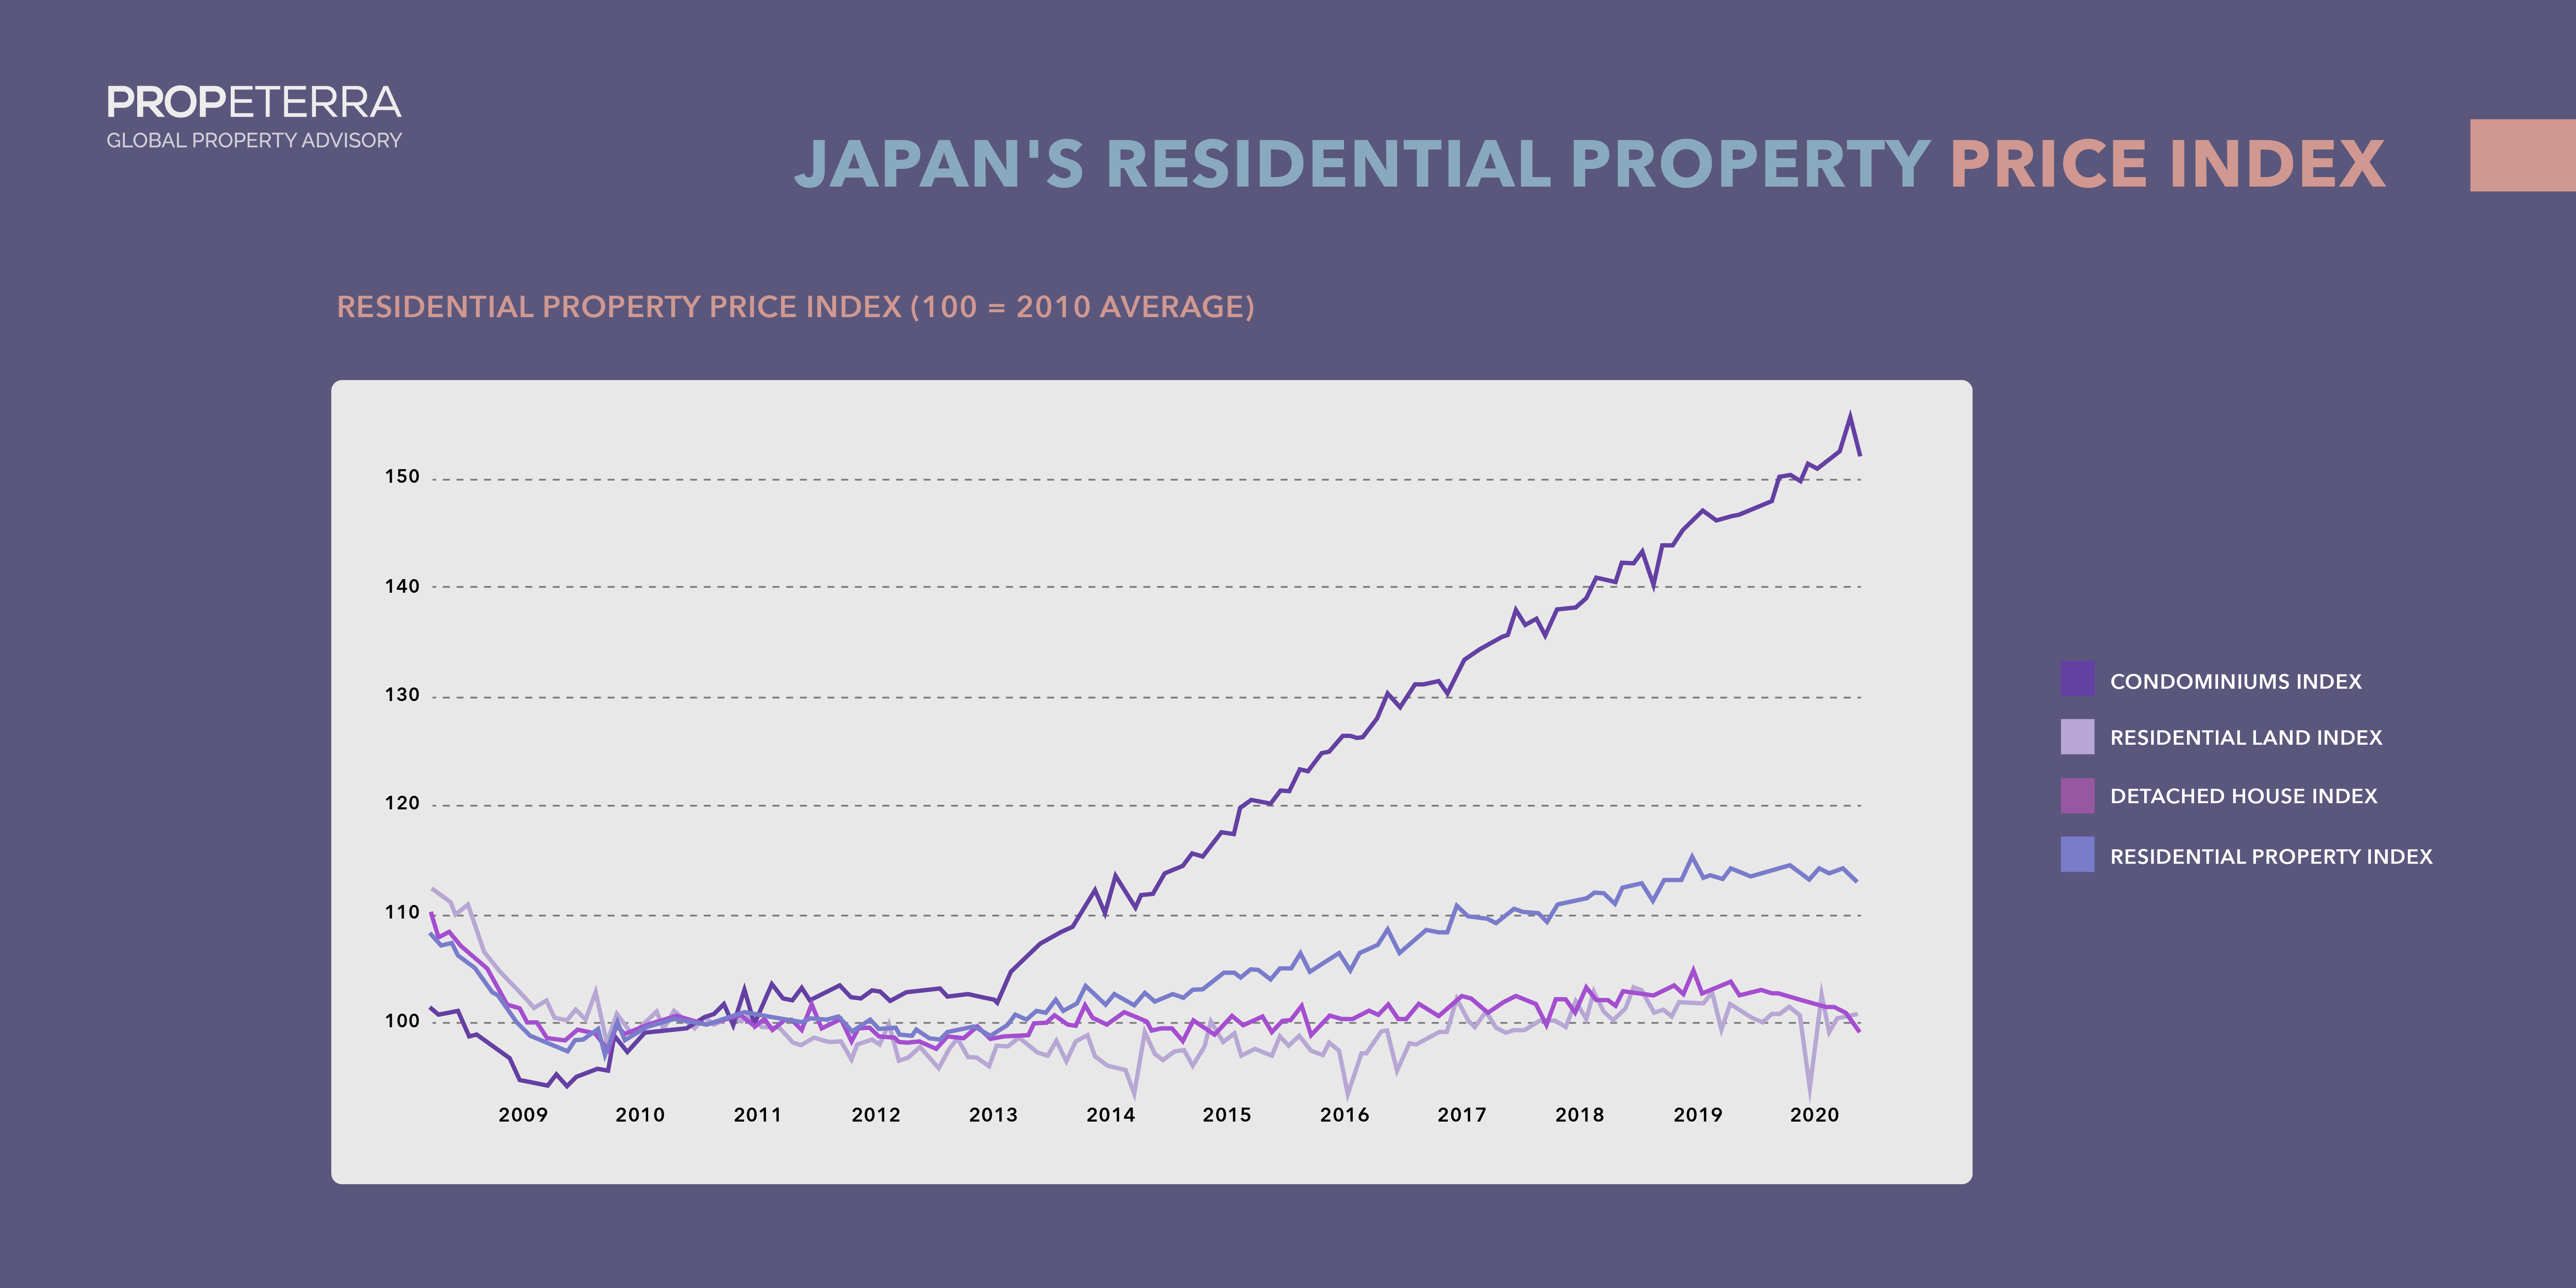 Japan's residential property price index